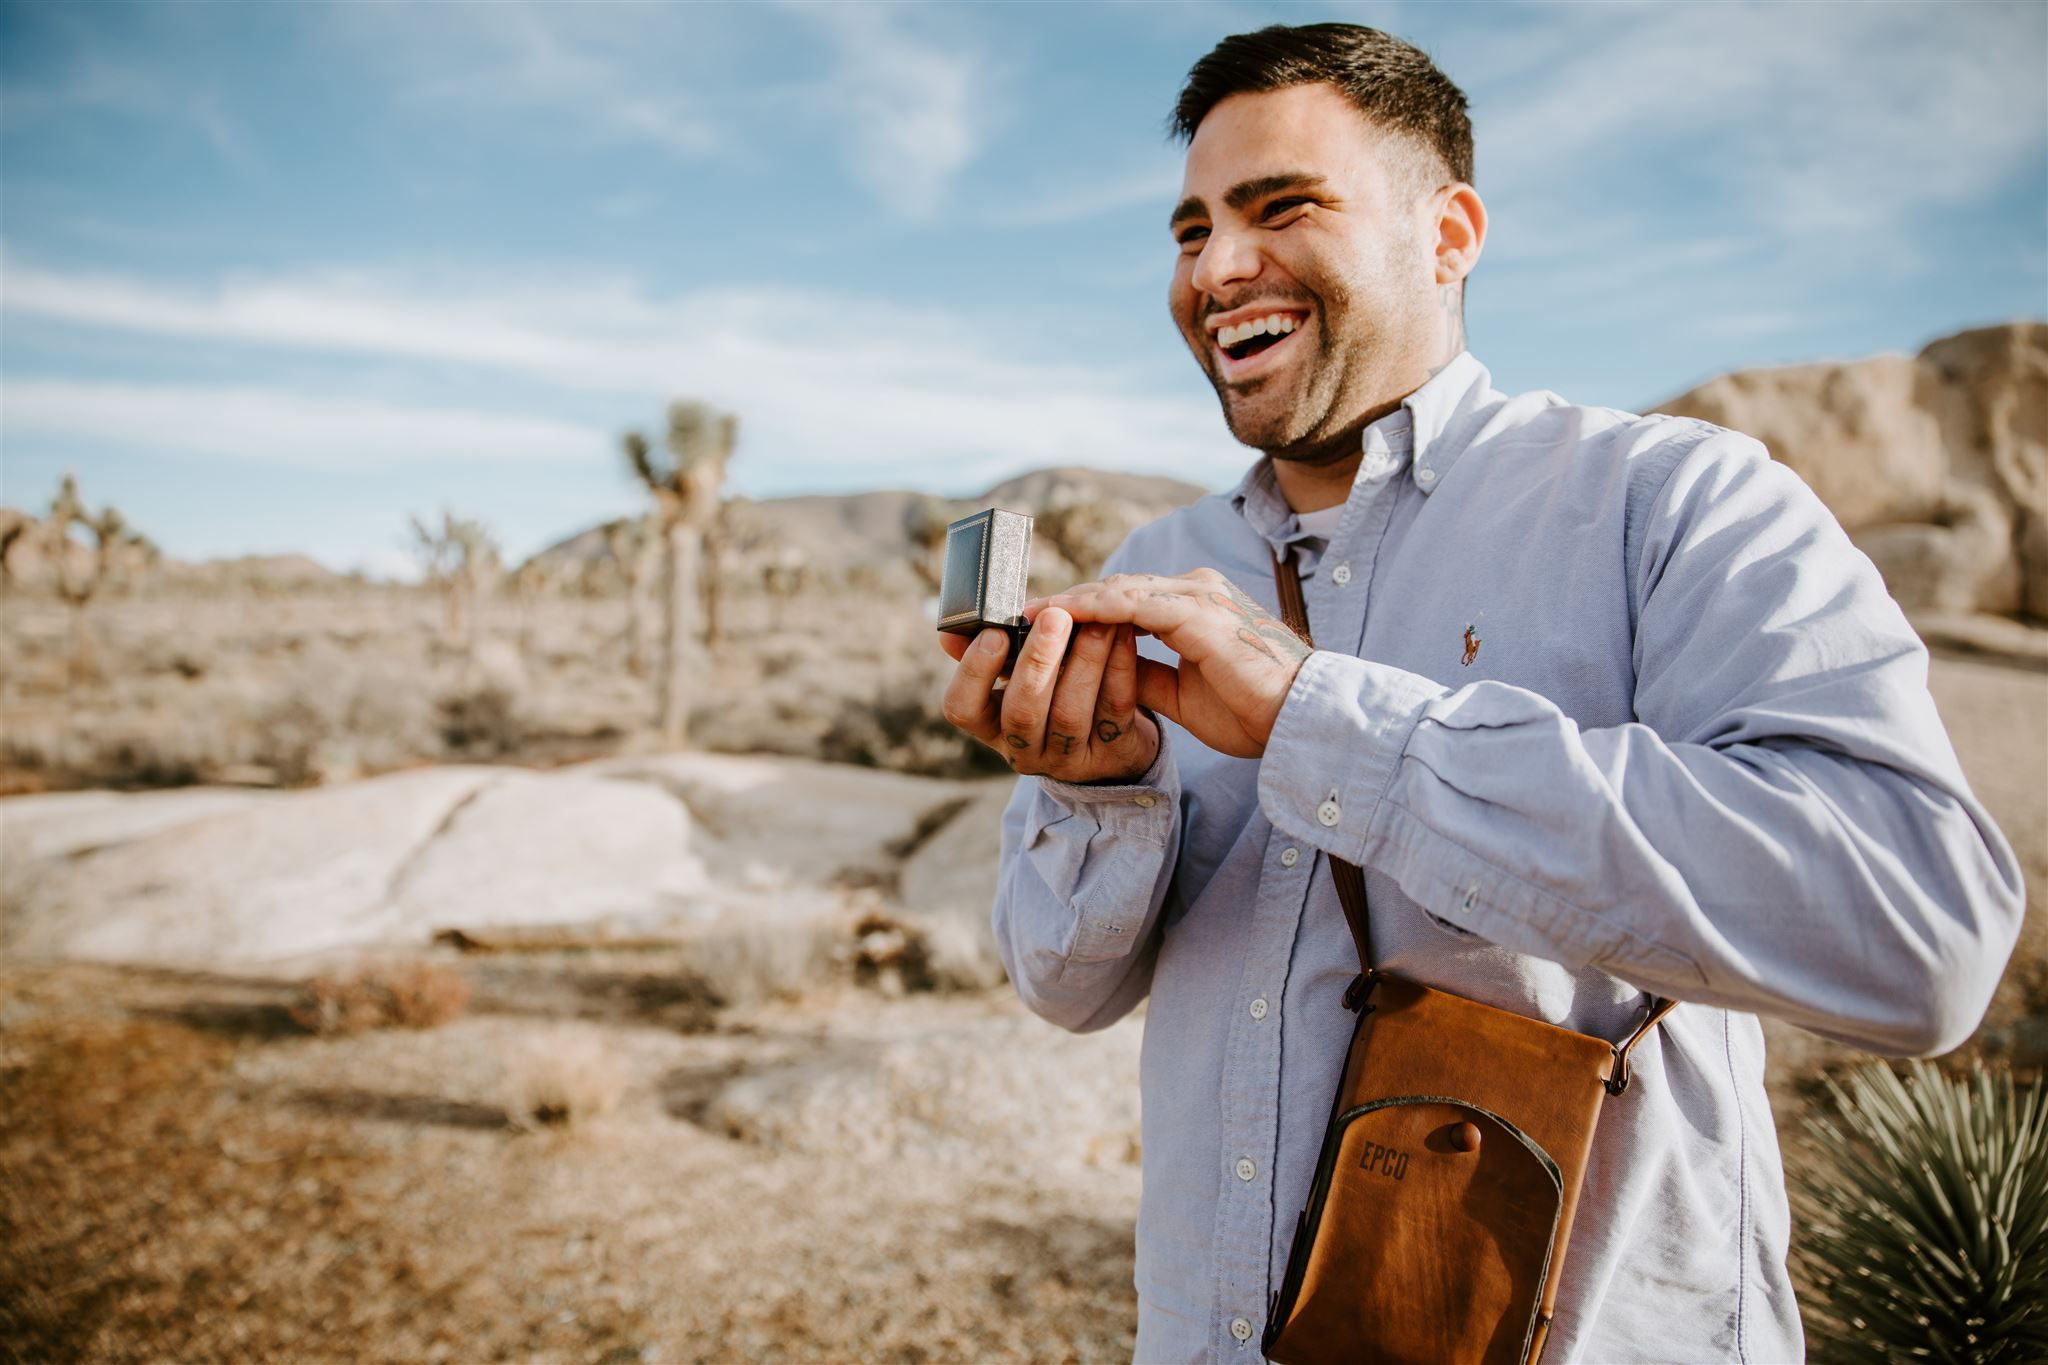 Joshua Tree CA Elopement Wedding  Photographer May Iosotaluno 43.jpg